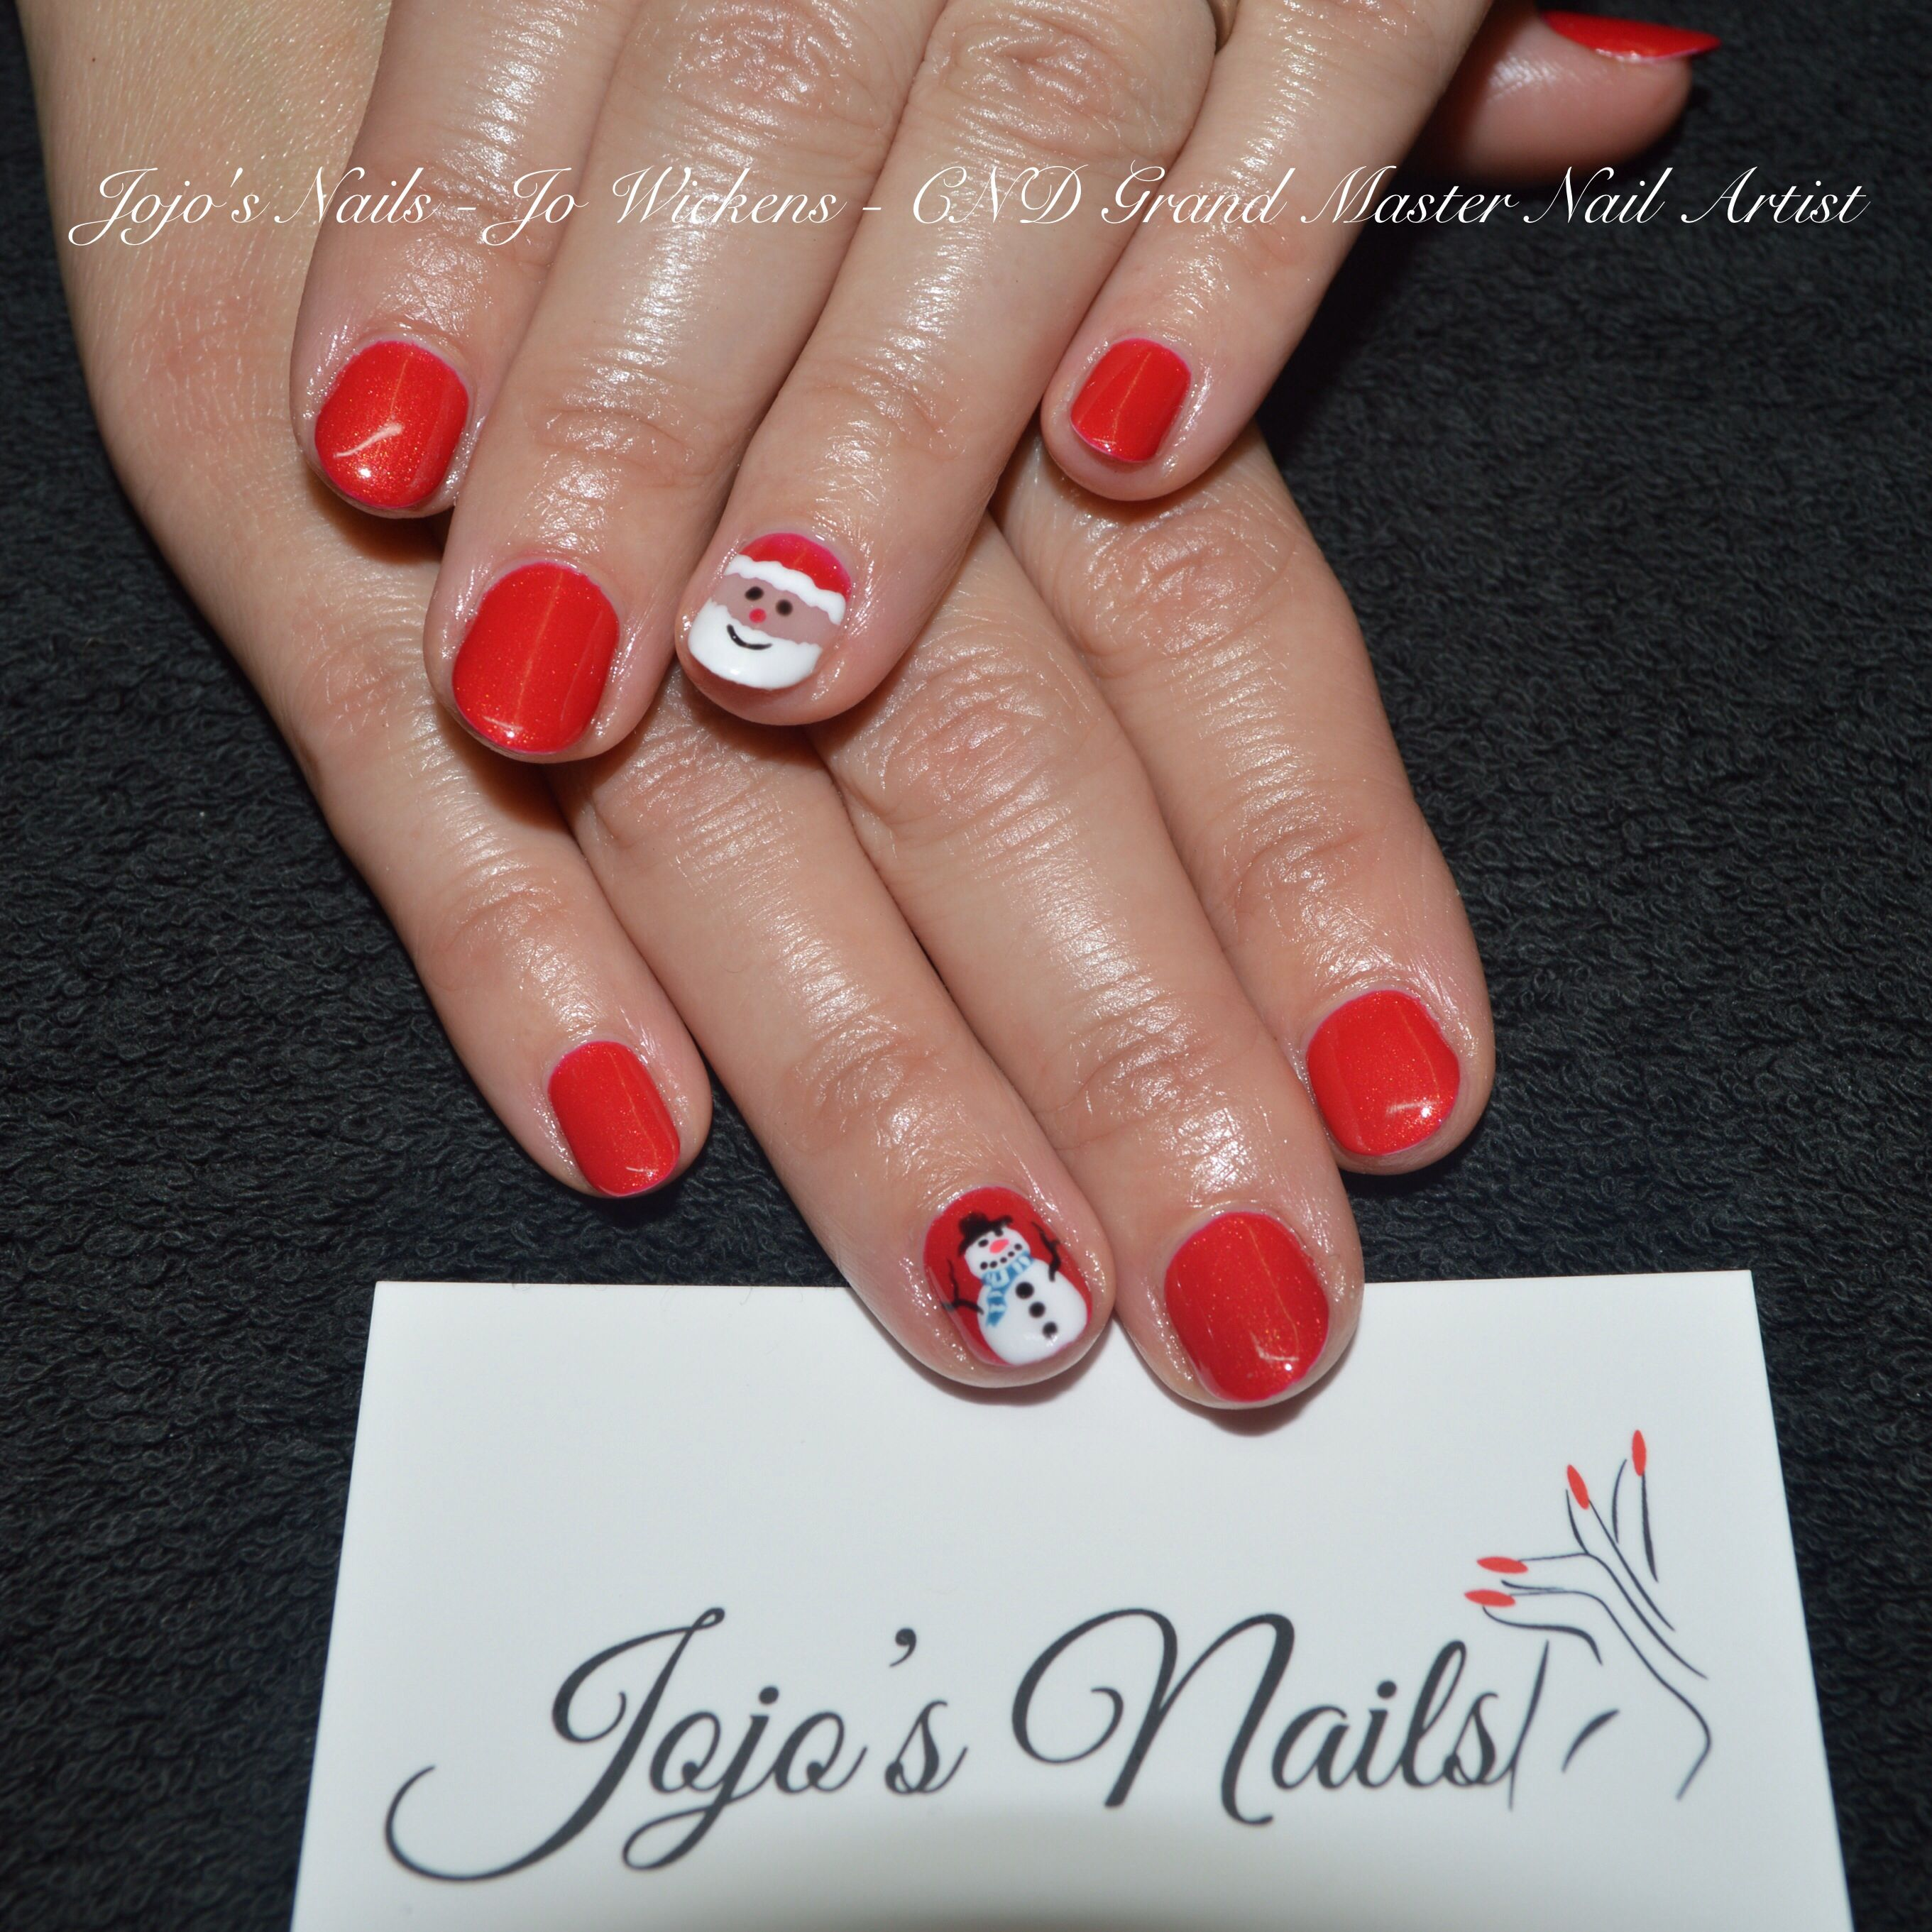 Cnd Shellac Manicure With Hand Painted Nail Art By Jo Wickens